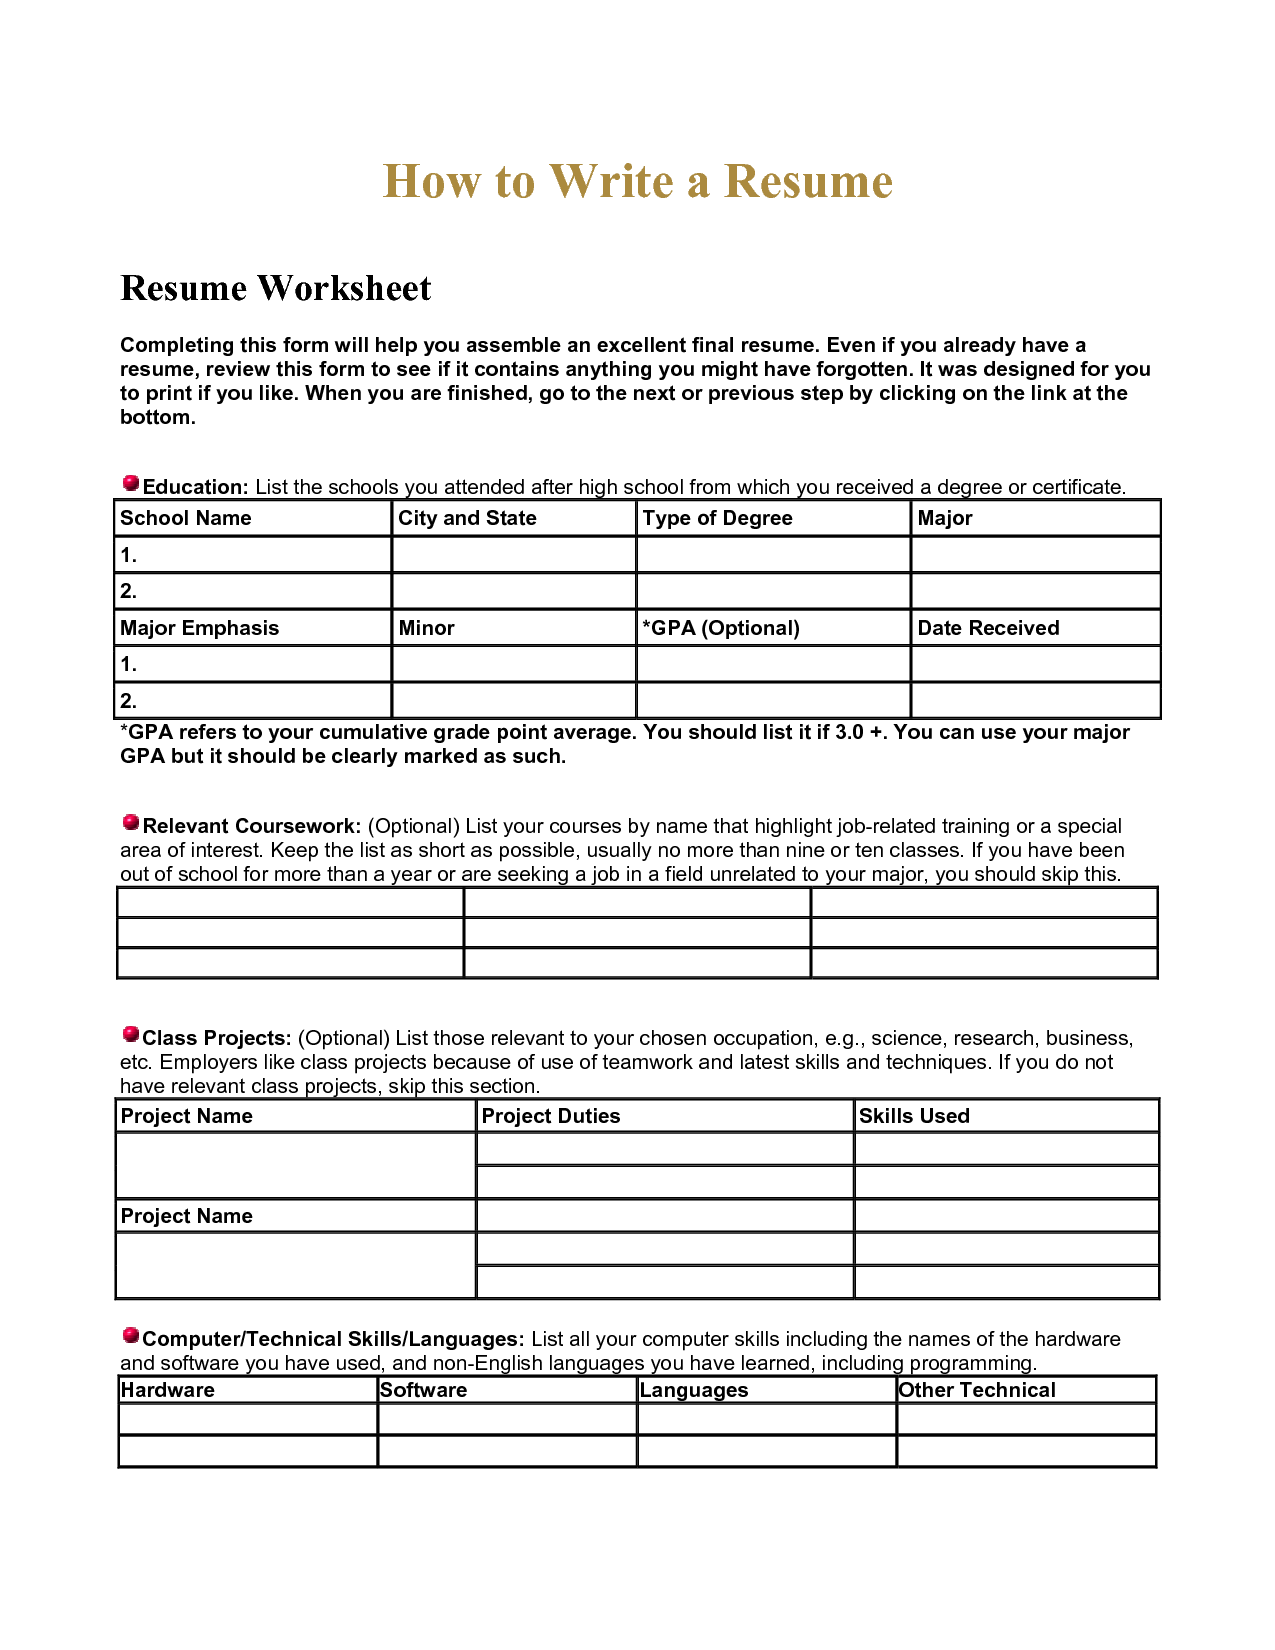 high school resume worksheet using your academic experiences to build a resume